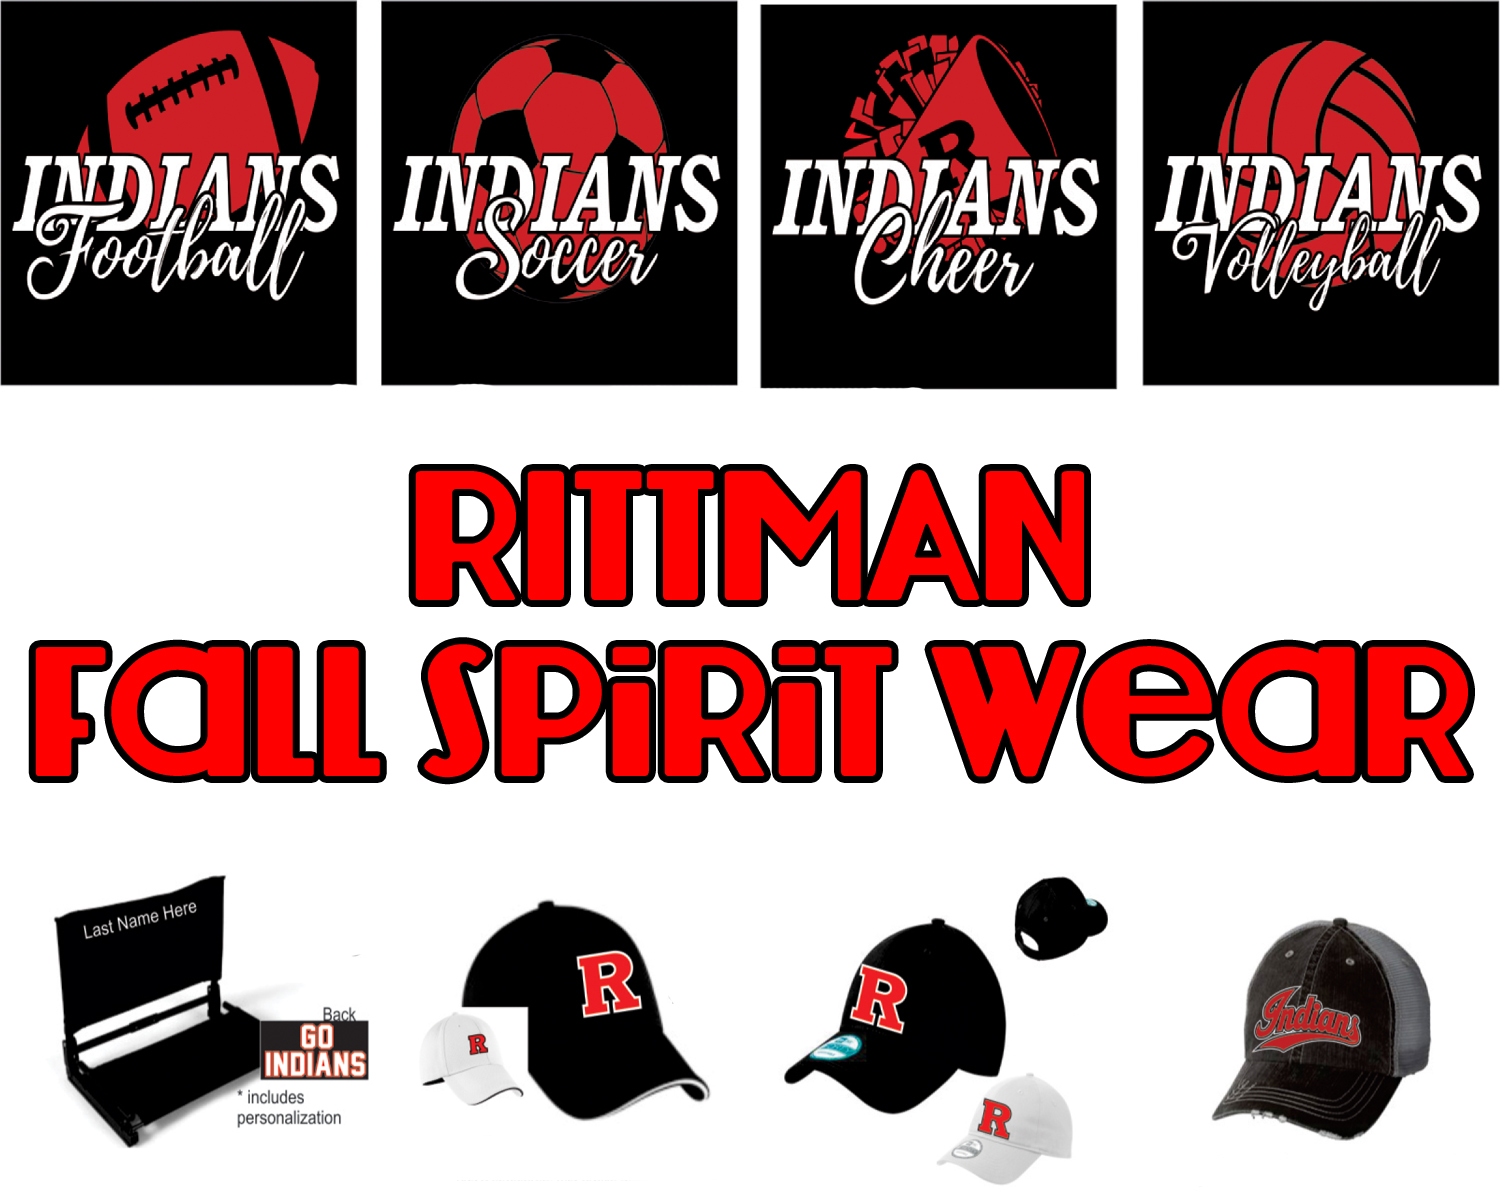 Rittman Fall Spirit Wear